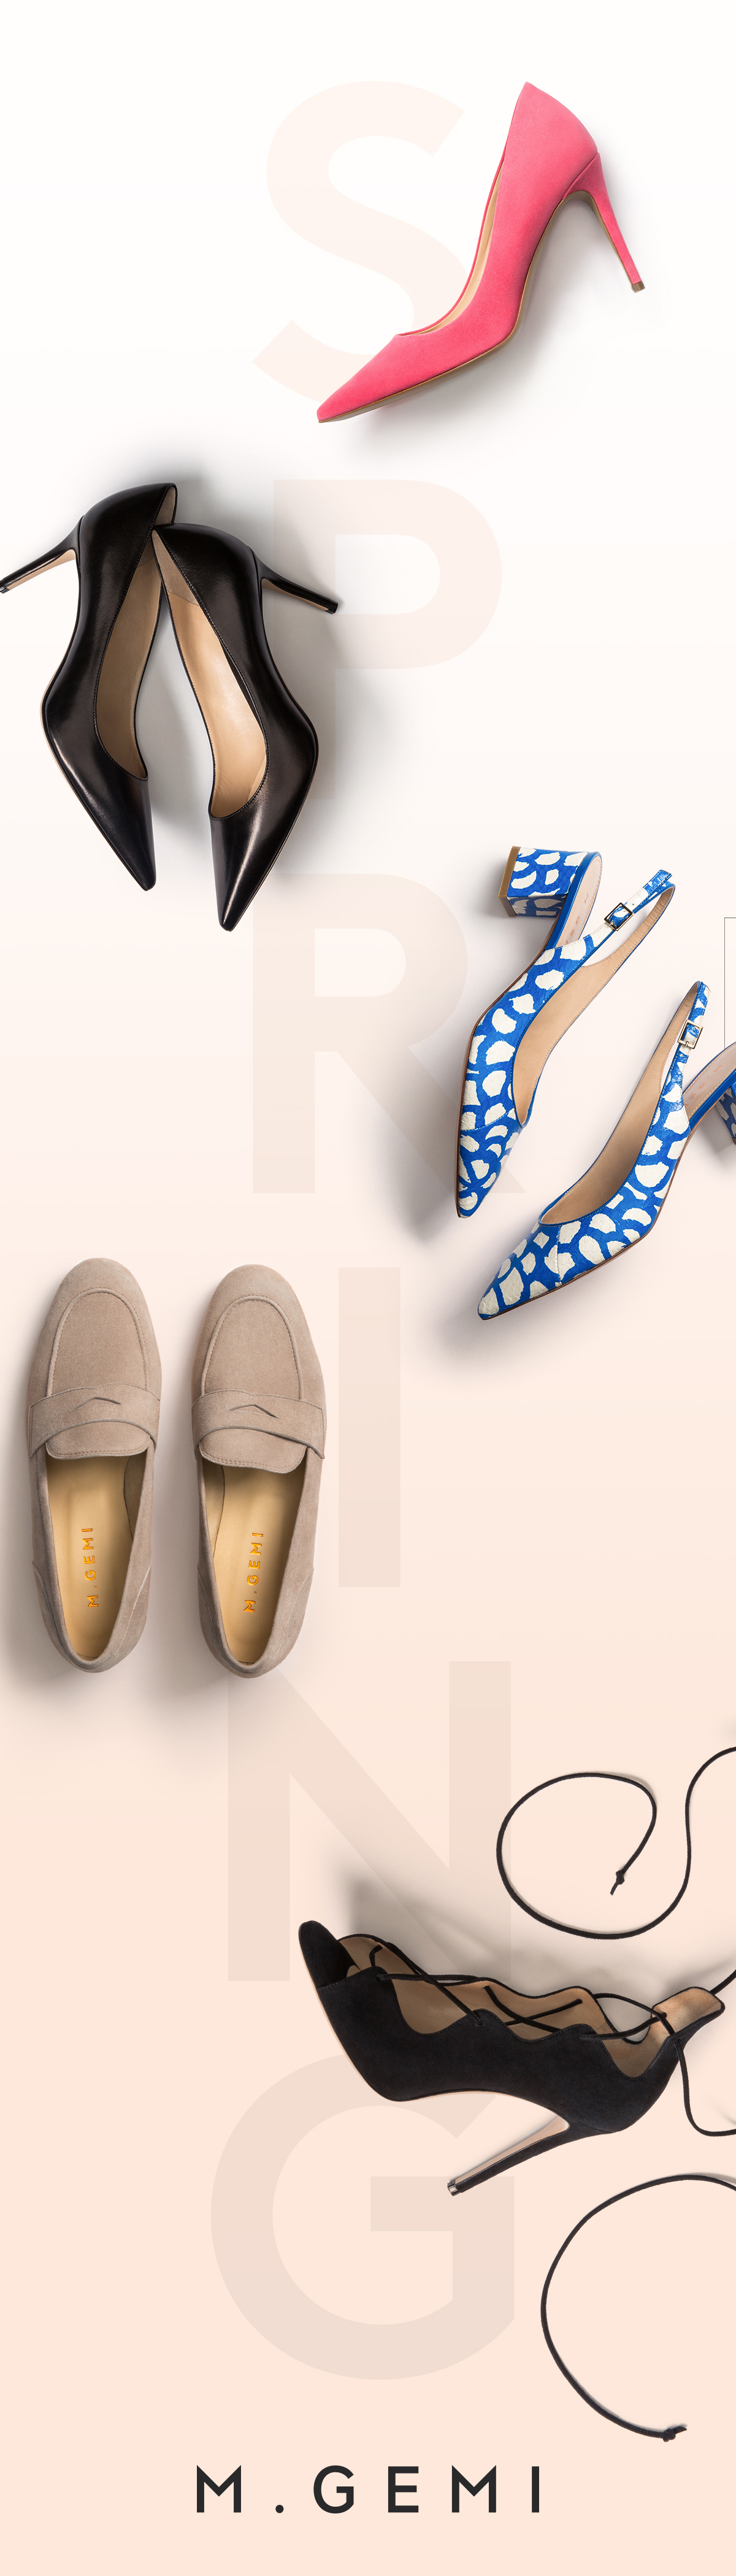 Kick things up for the new season with M.Gemi's refined flats and show-stopping pumps. Put a little spring in your step, go shopping.